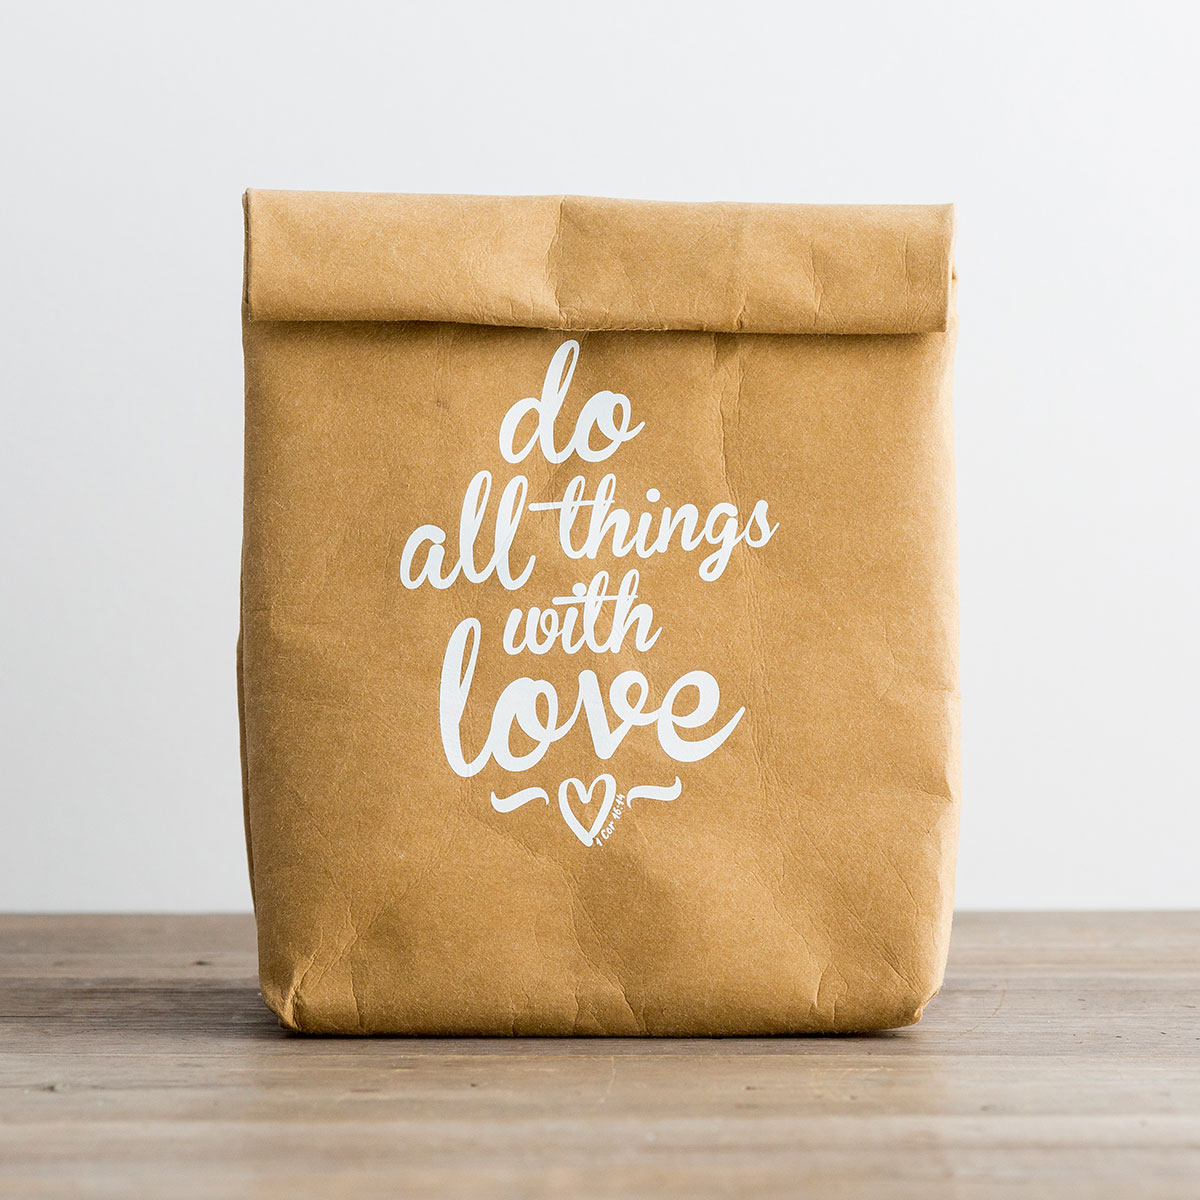 Do All Things with Love - Insulated Lunch Bag